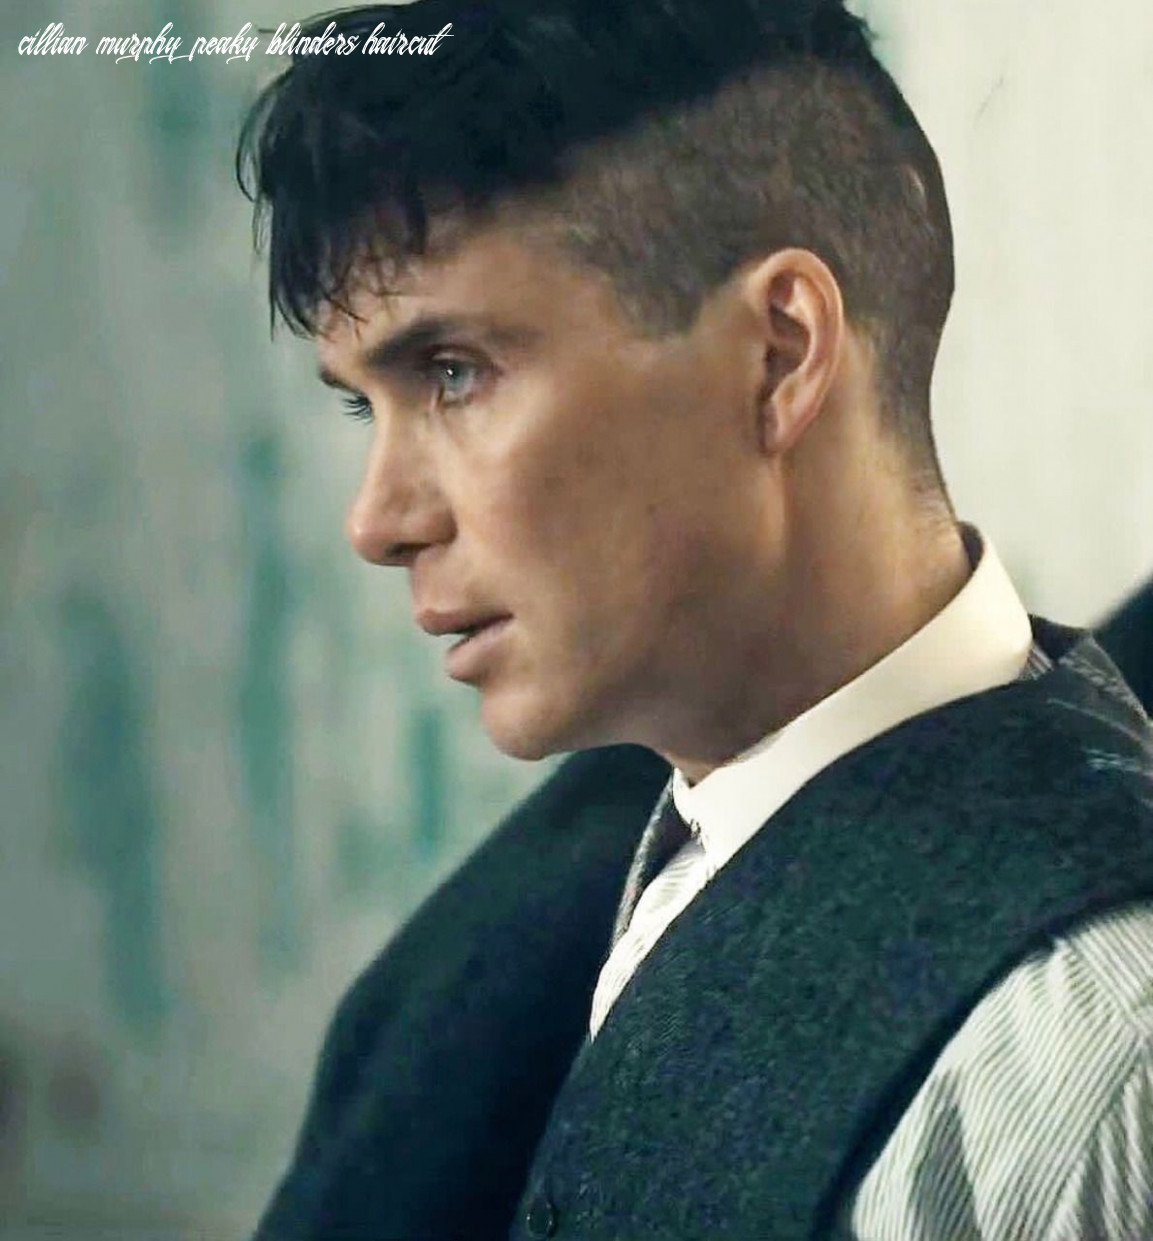 Cillian murphy as tommy shelby (with images)   cillian murphy